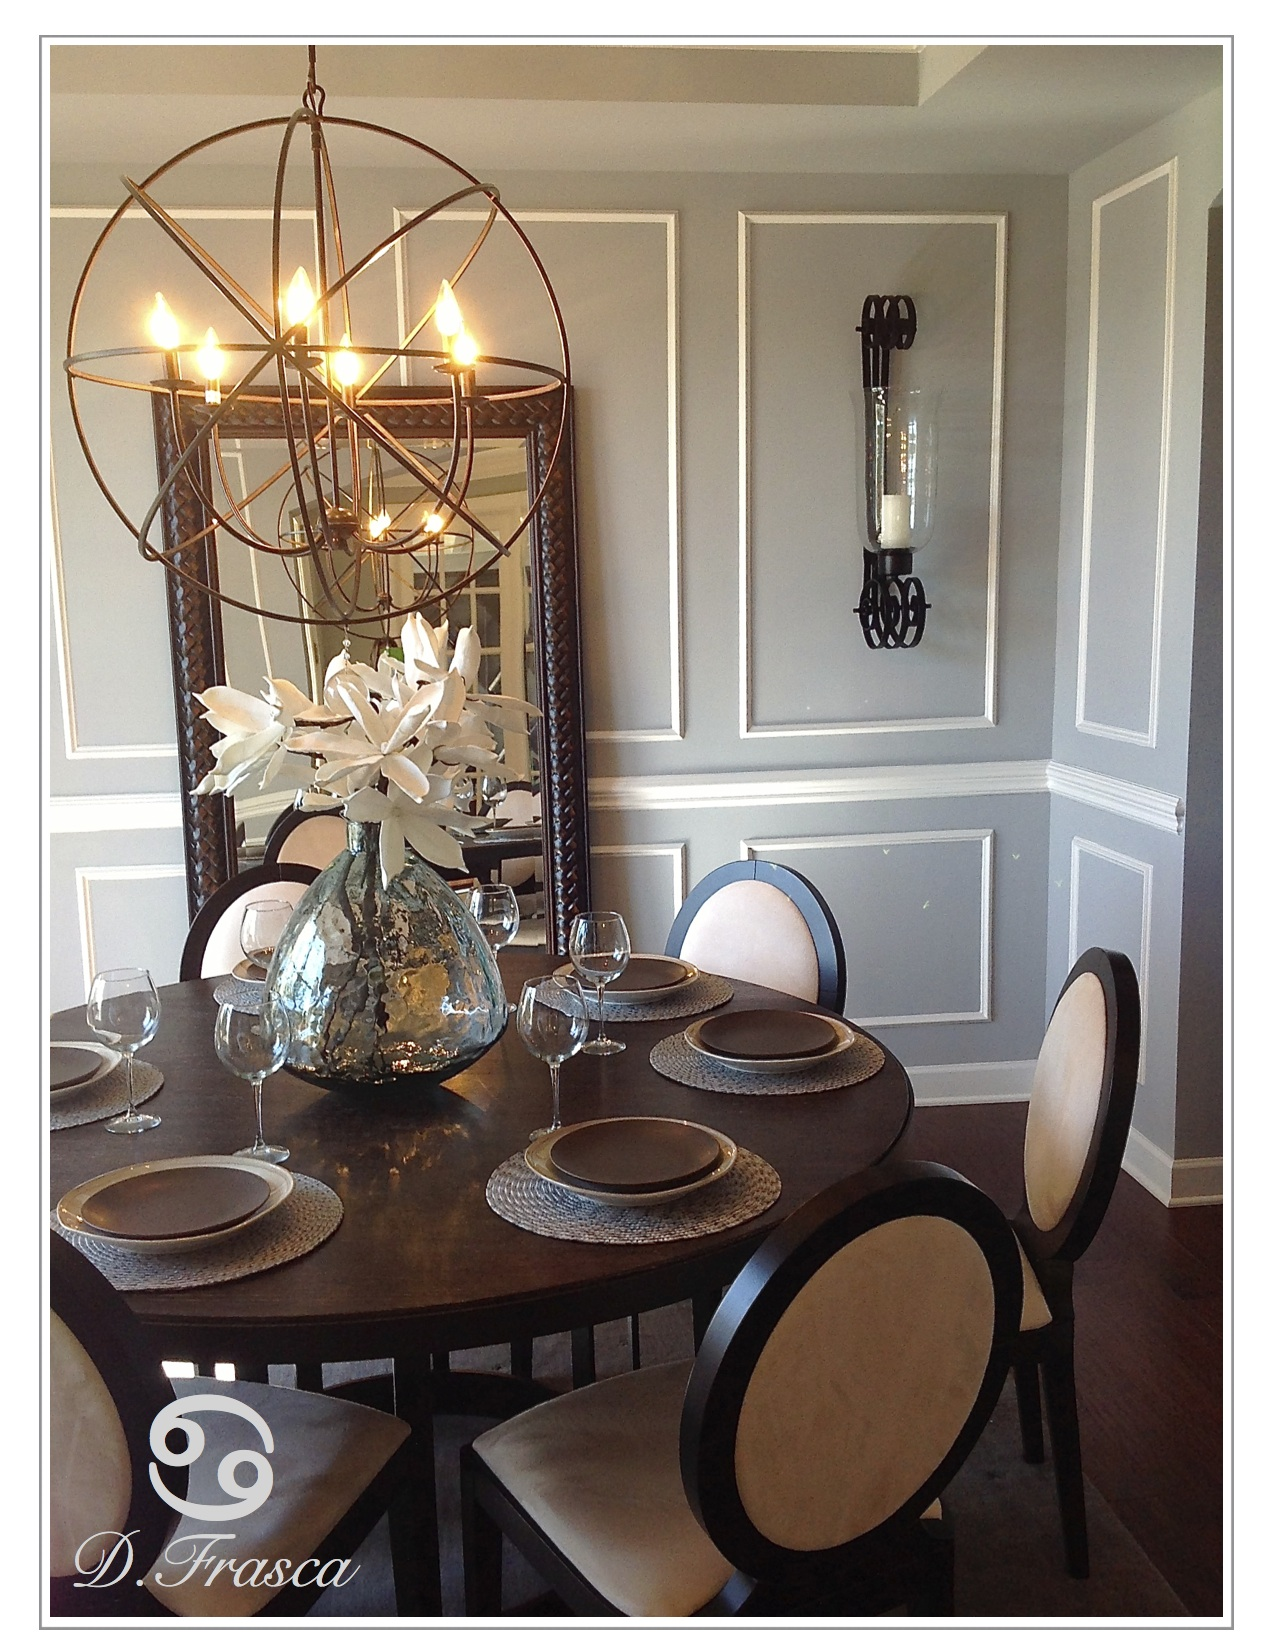 Meritage Homes In Weddington Encompasses A Great Location And The Latest Trends Decorating By